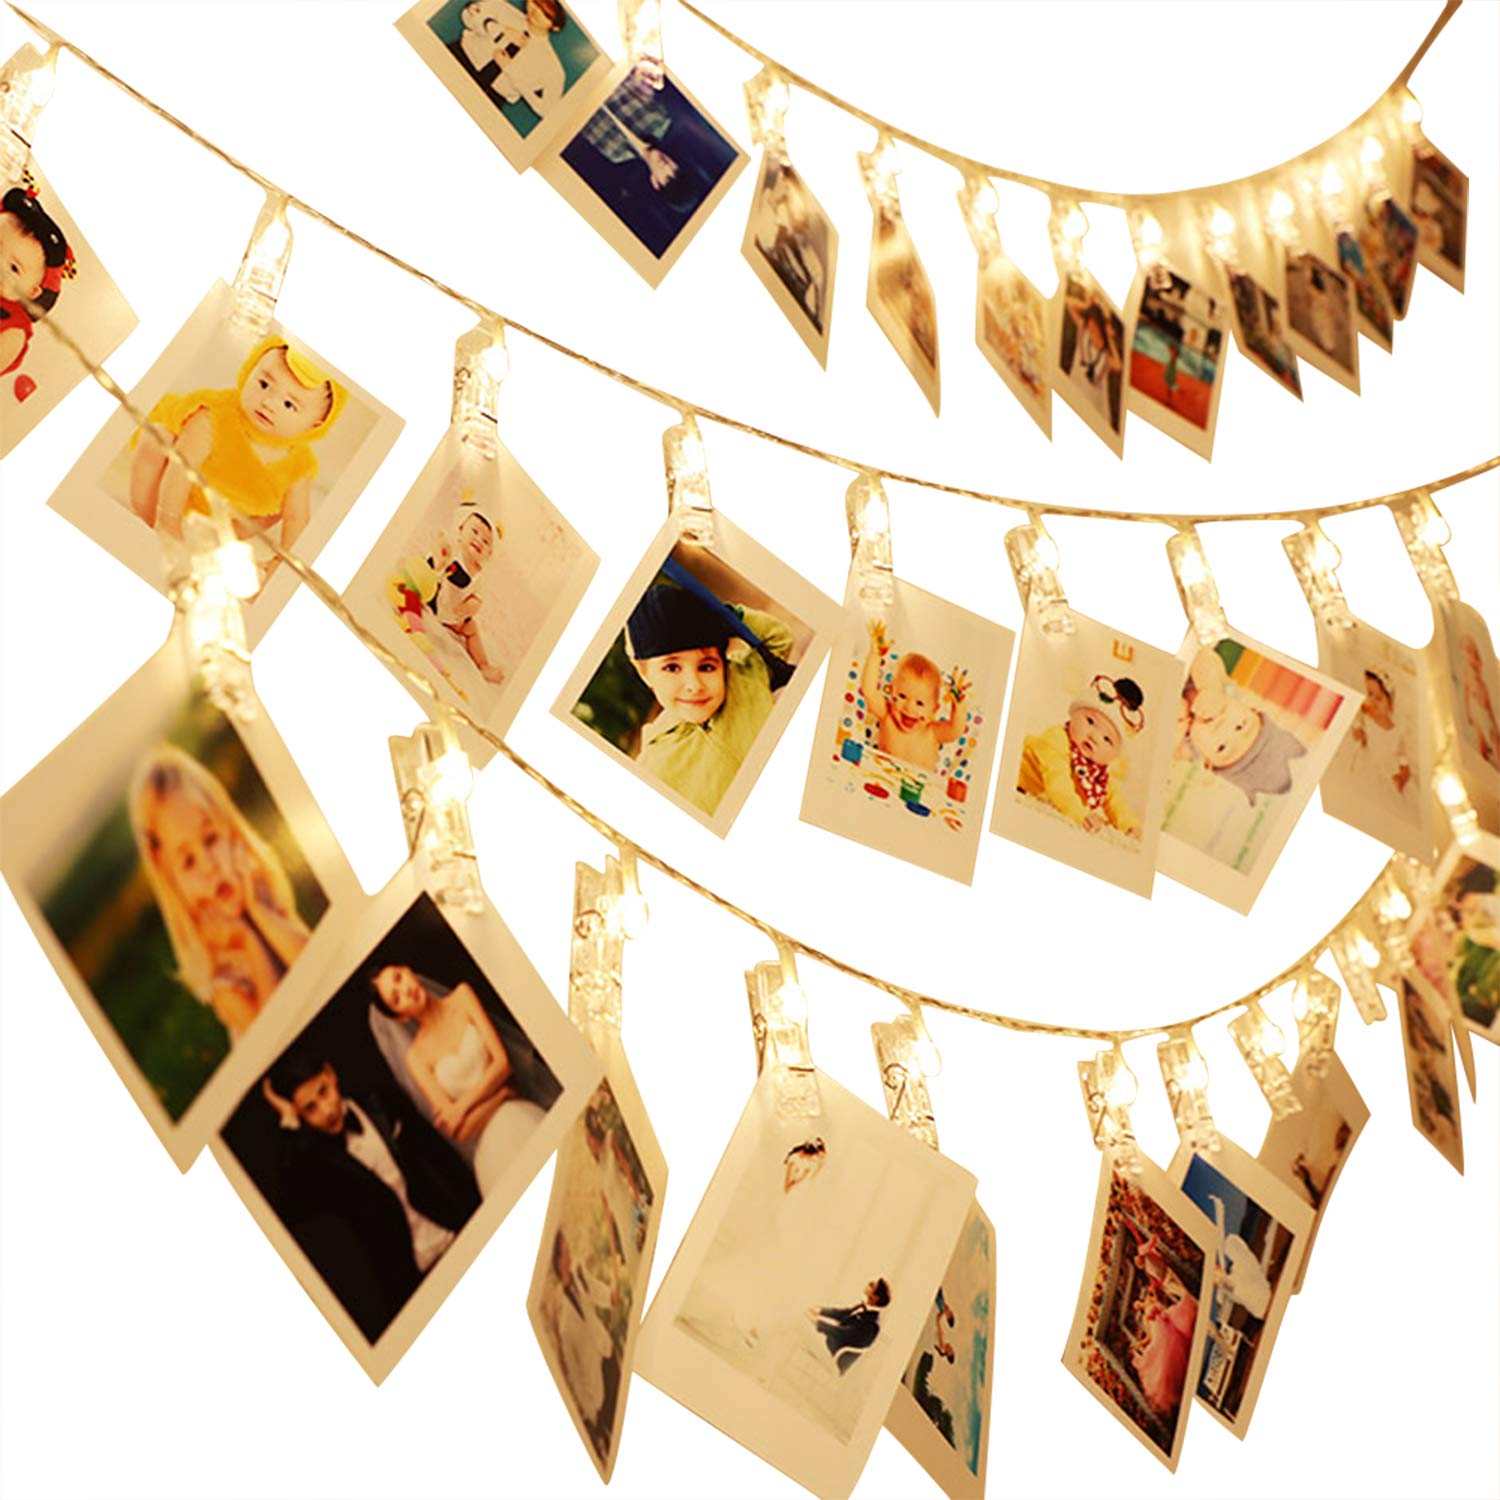 Dreamiracle String Lights, 40 LED Photo Clips 16.4ft Fairy Lights for Hanging Photos Pictures and Memos, Perfect for Dorm Bedroom Home Decor (Warm White)